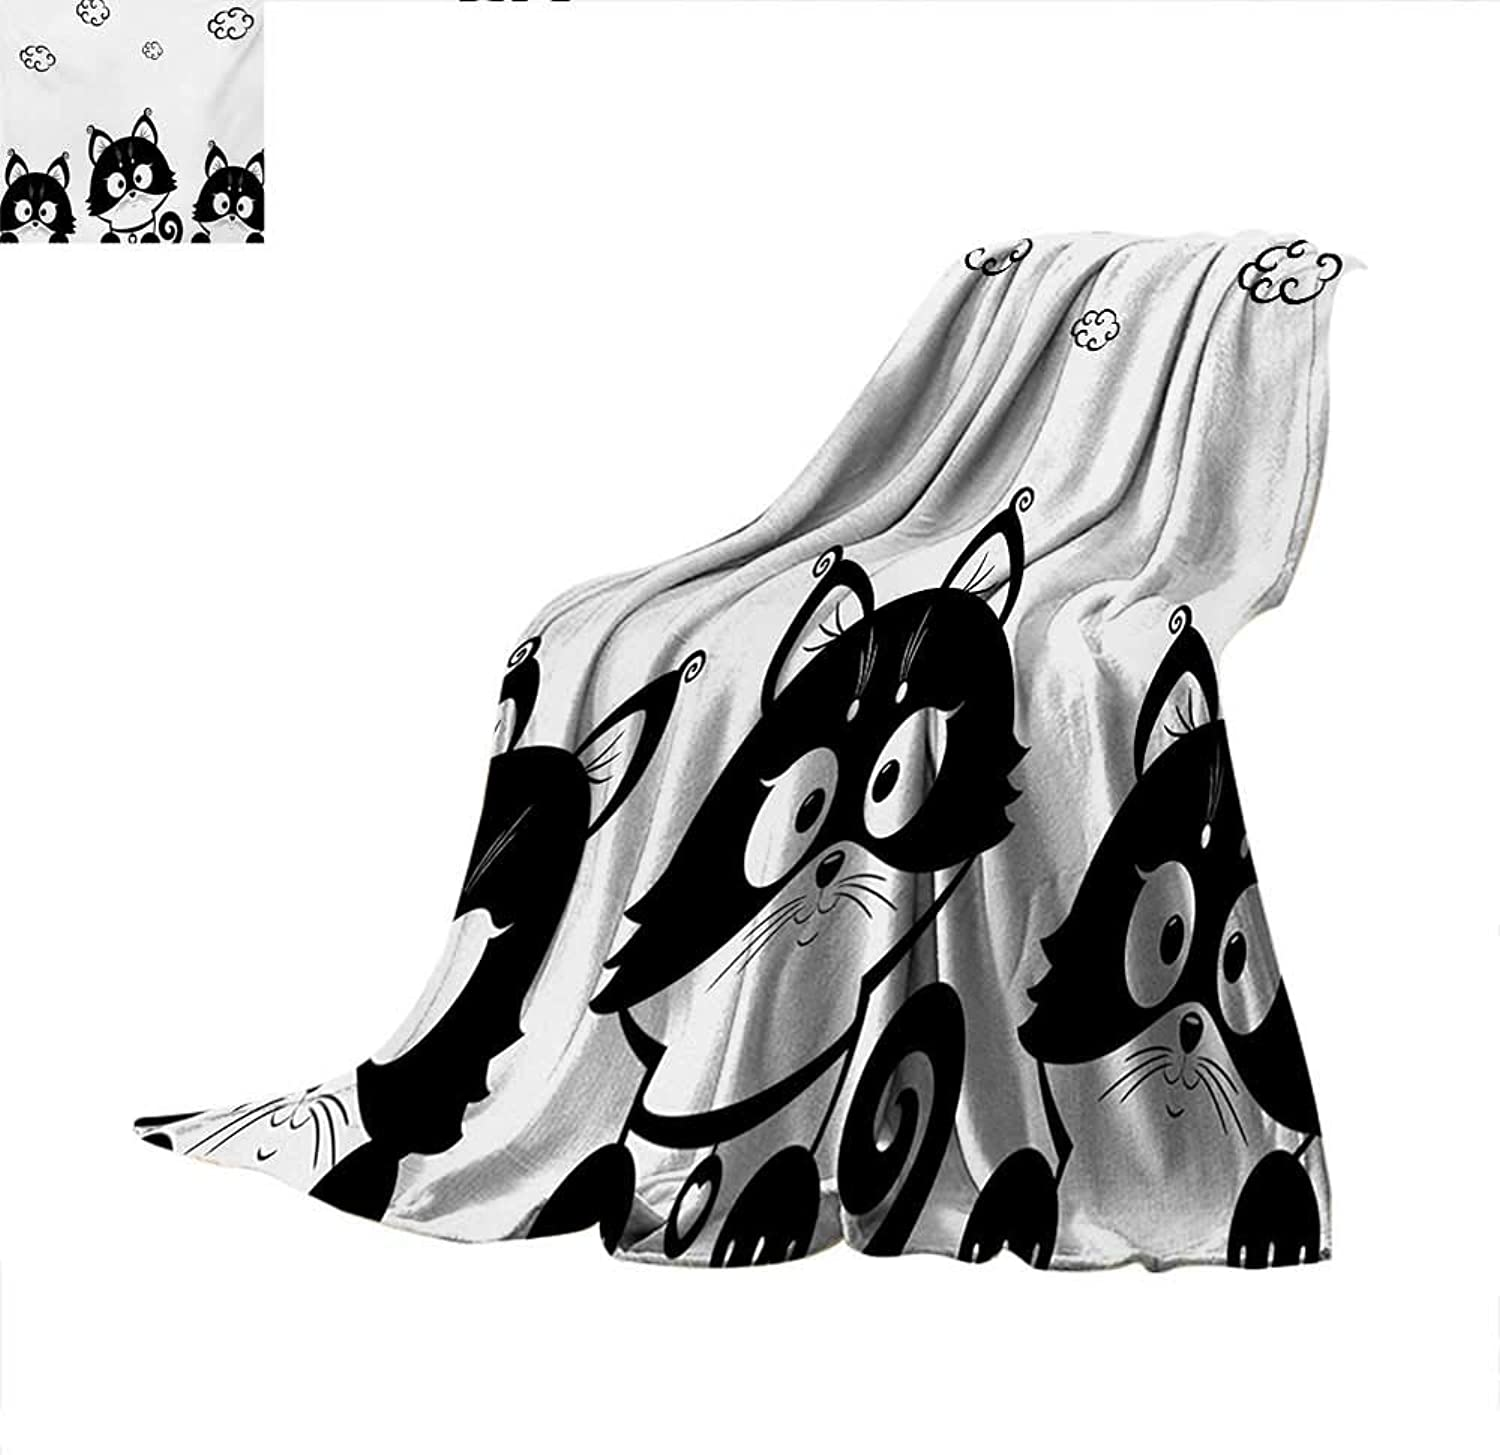 Black and White Weave Pattern Blanket Cute Three Kittens with Clouds Over Their Heads Small Thoughts Art Summer Quilt Comforter 60 x50  Black and White